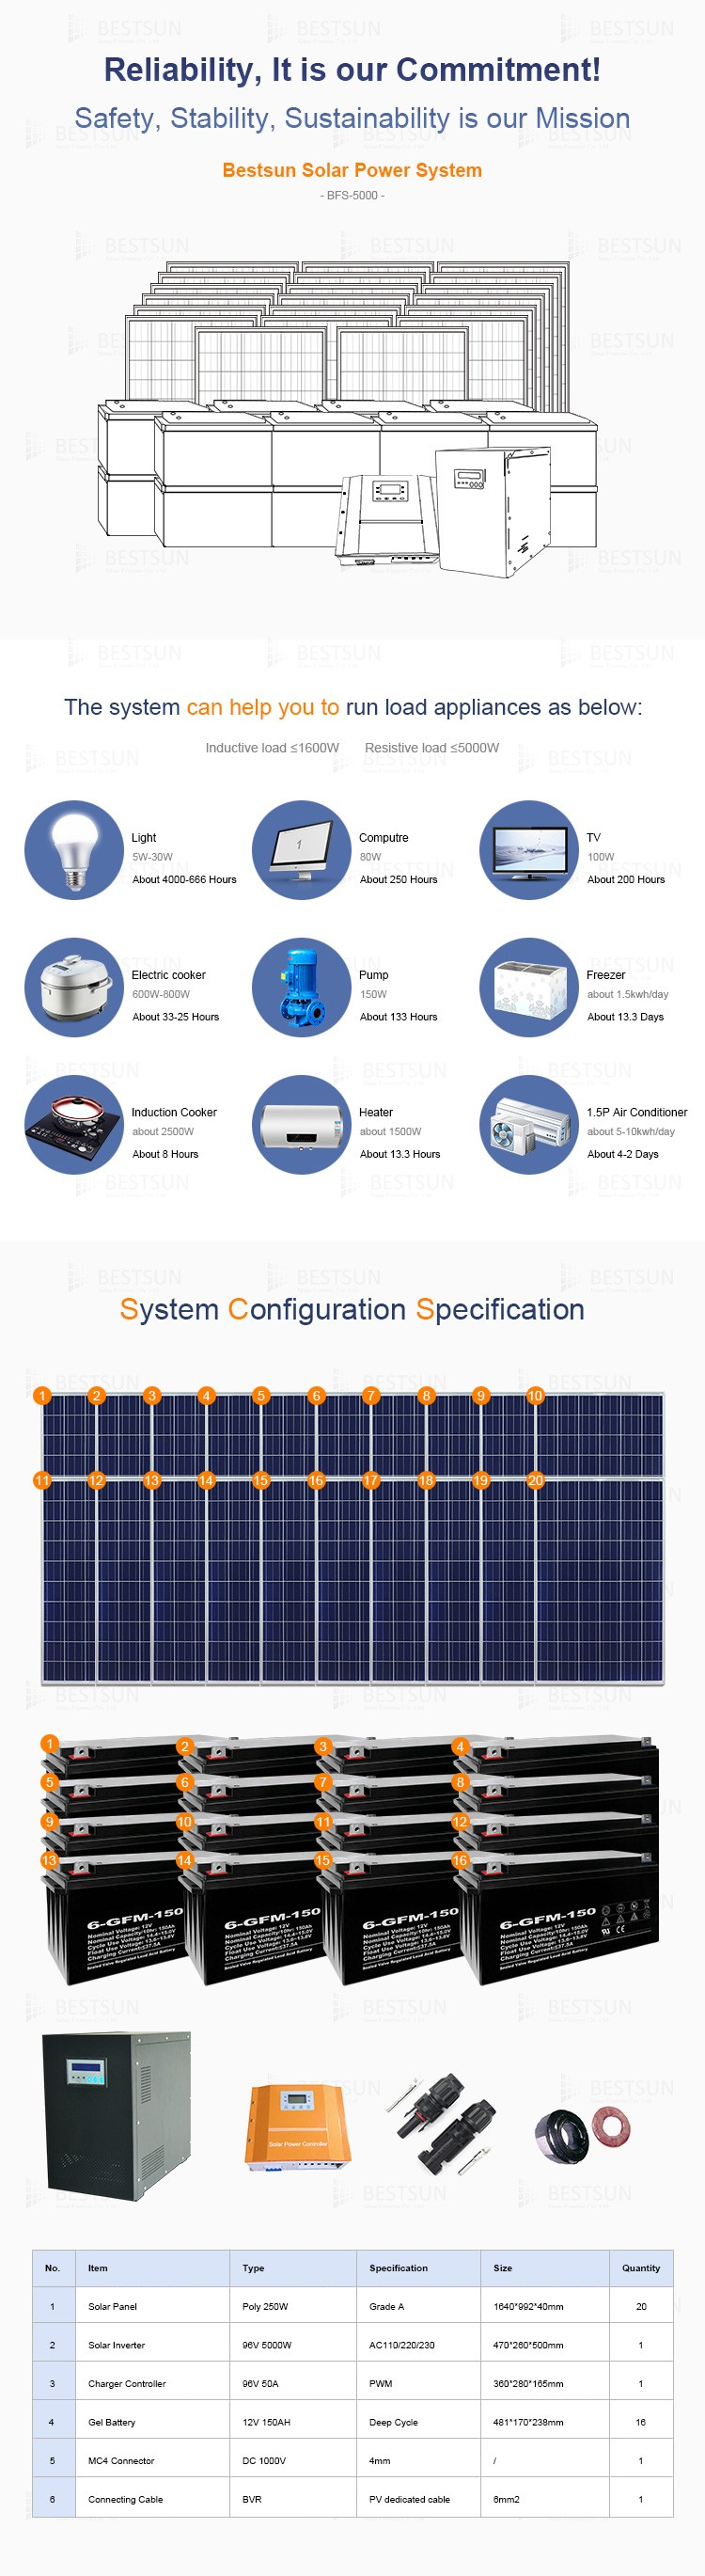 factory design solar power residential On Grid tied Off Grid Solar Power System 1KW 2KW 3KW 5KW 10KW 20KW for Solar Power System